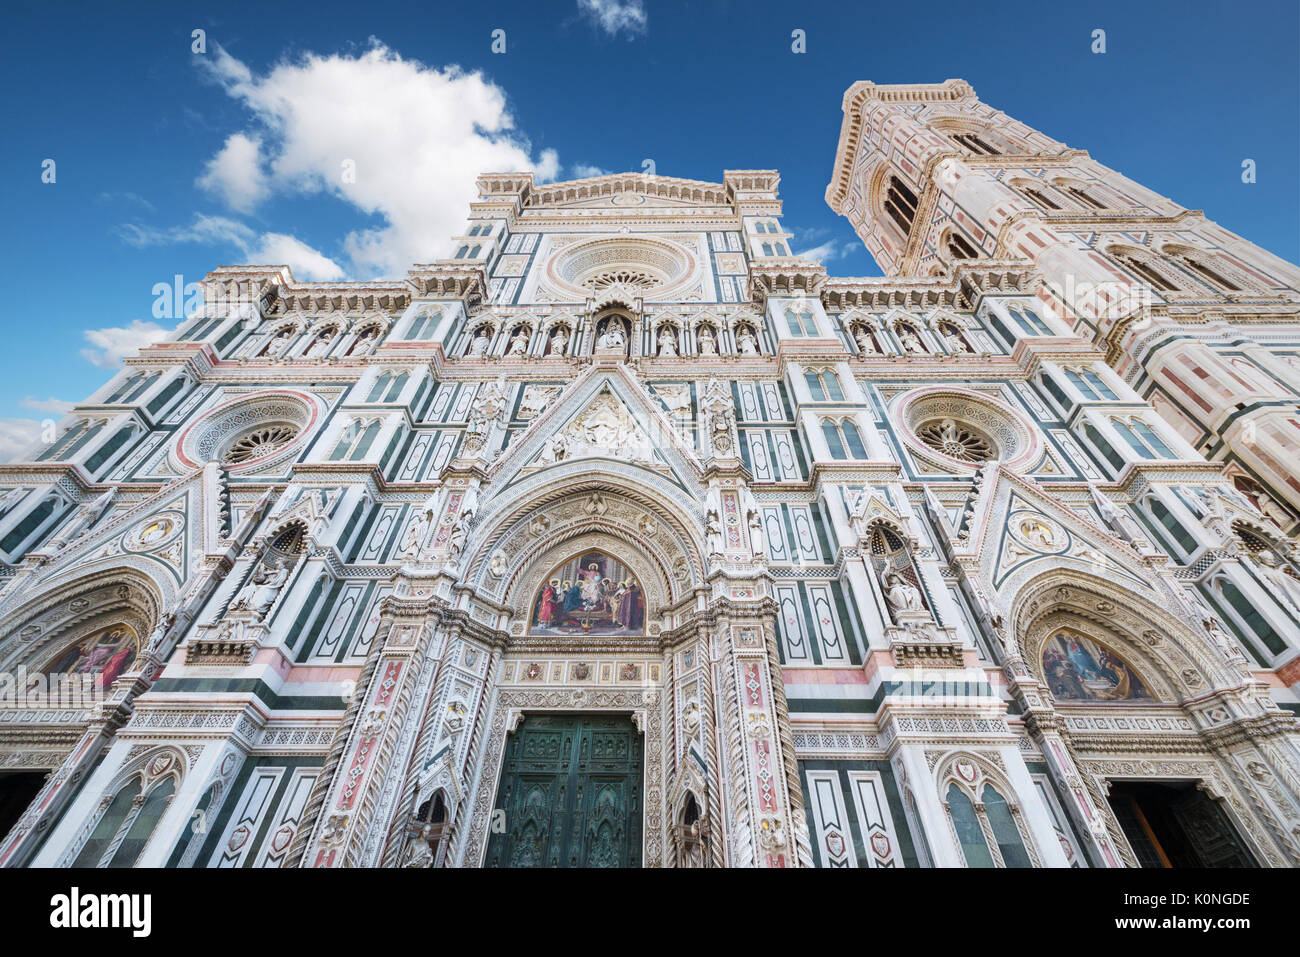 detail of the facade of famous Florence cathedral, Santa Maria del Fiore. - Stock Image